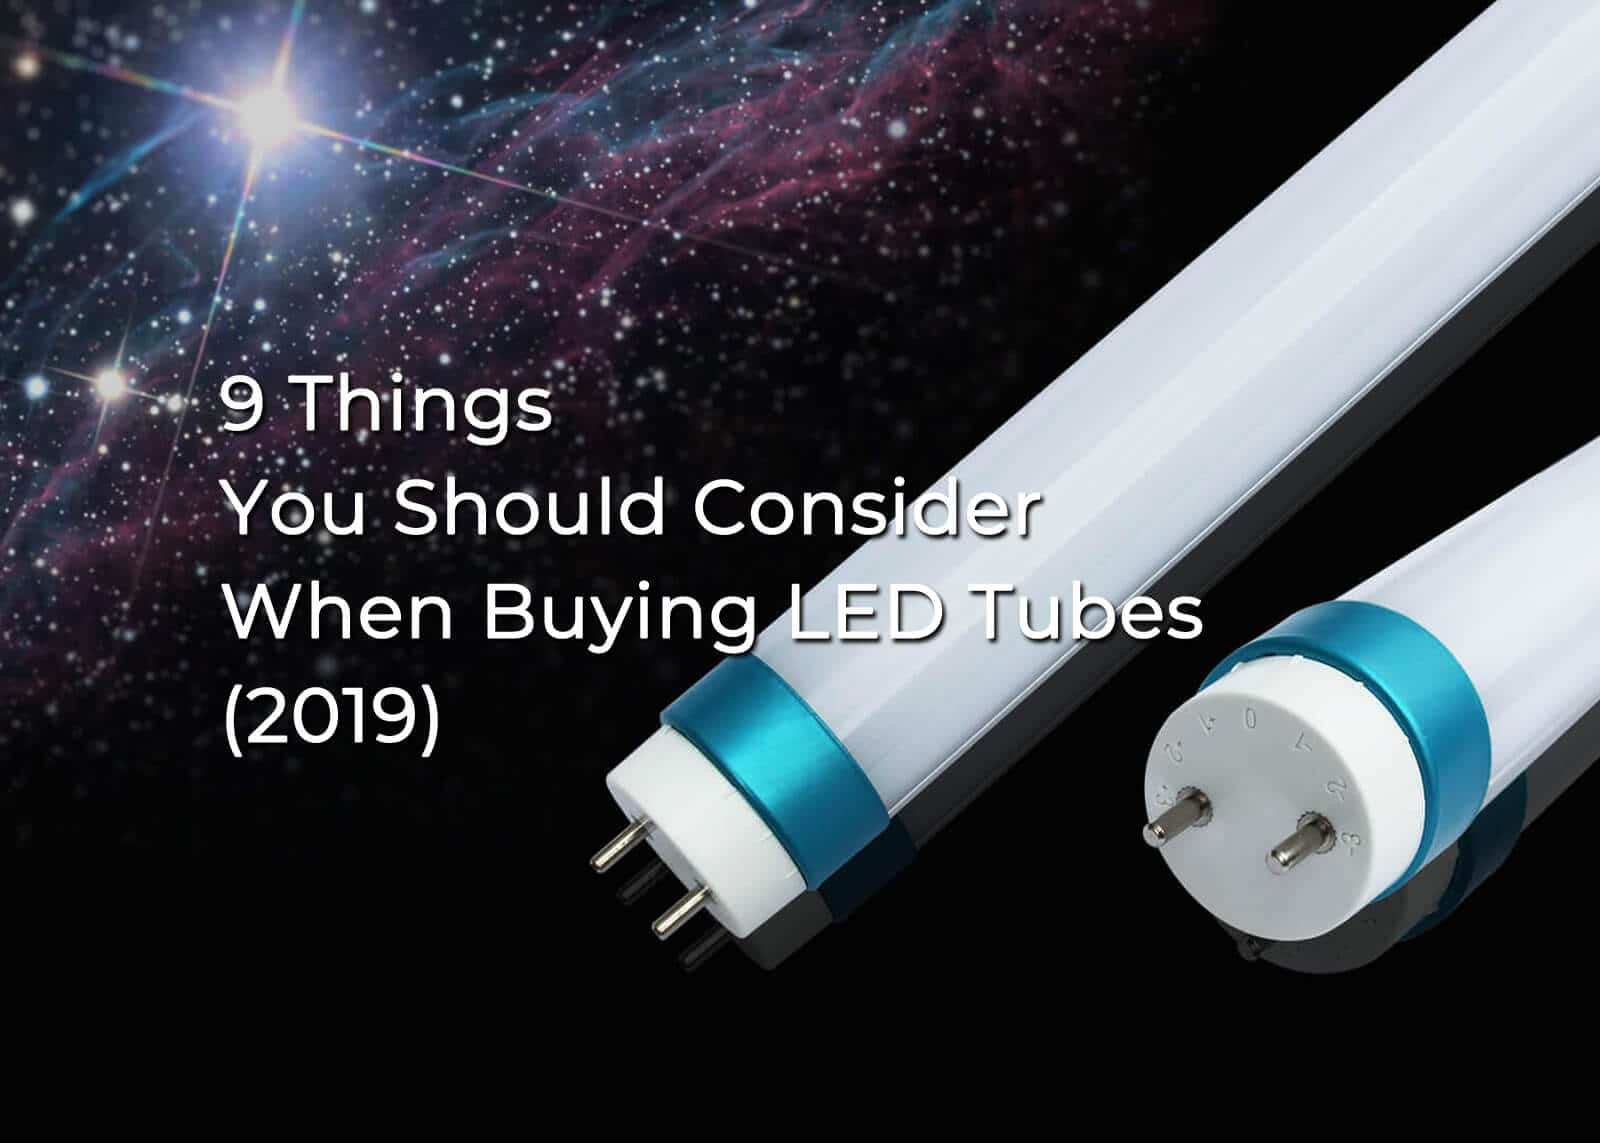 9 Things You Should Consider When Buying LED Tubes (2019)